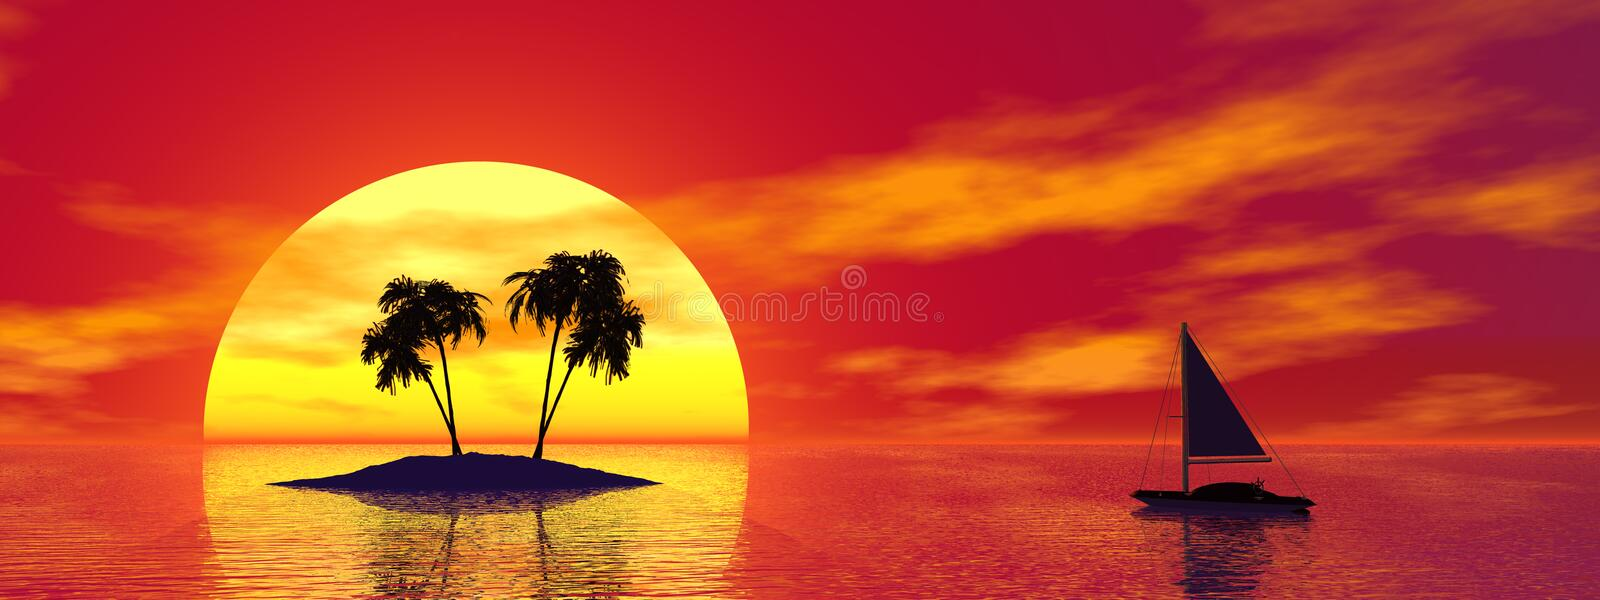 Tropic island royalty free stock image